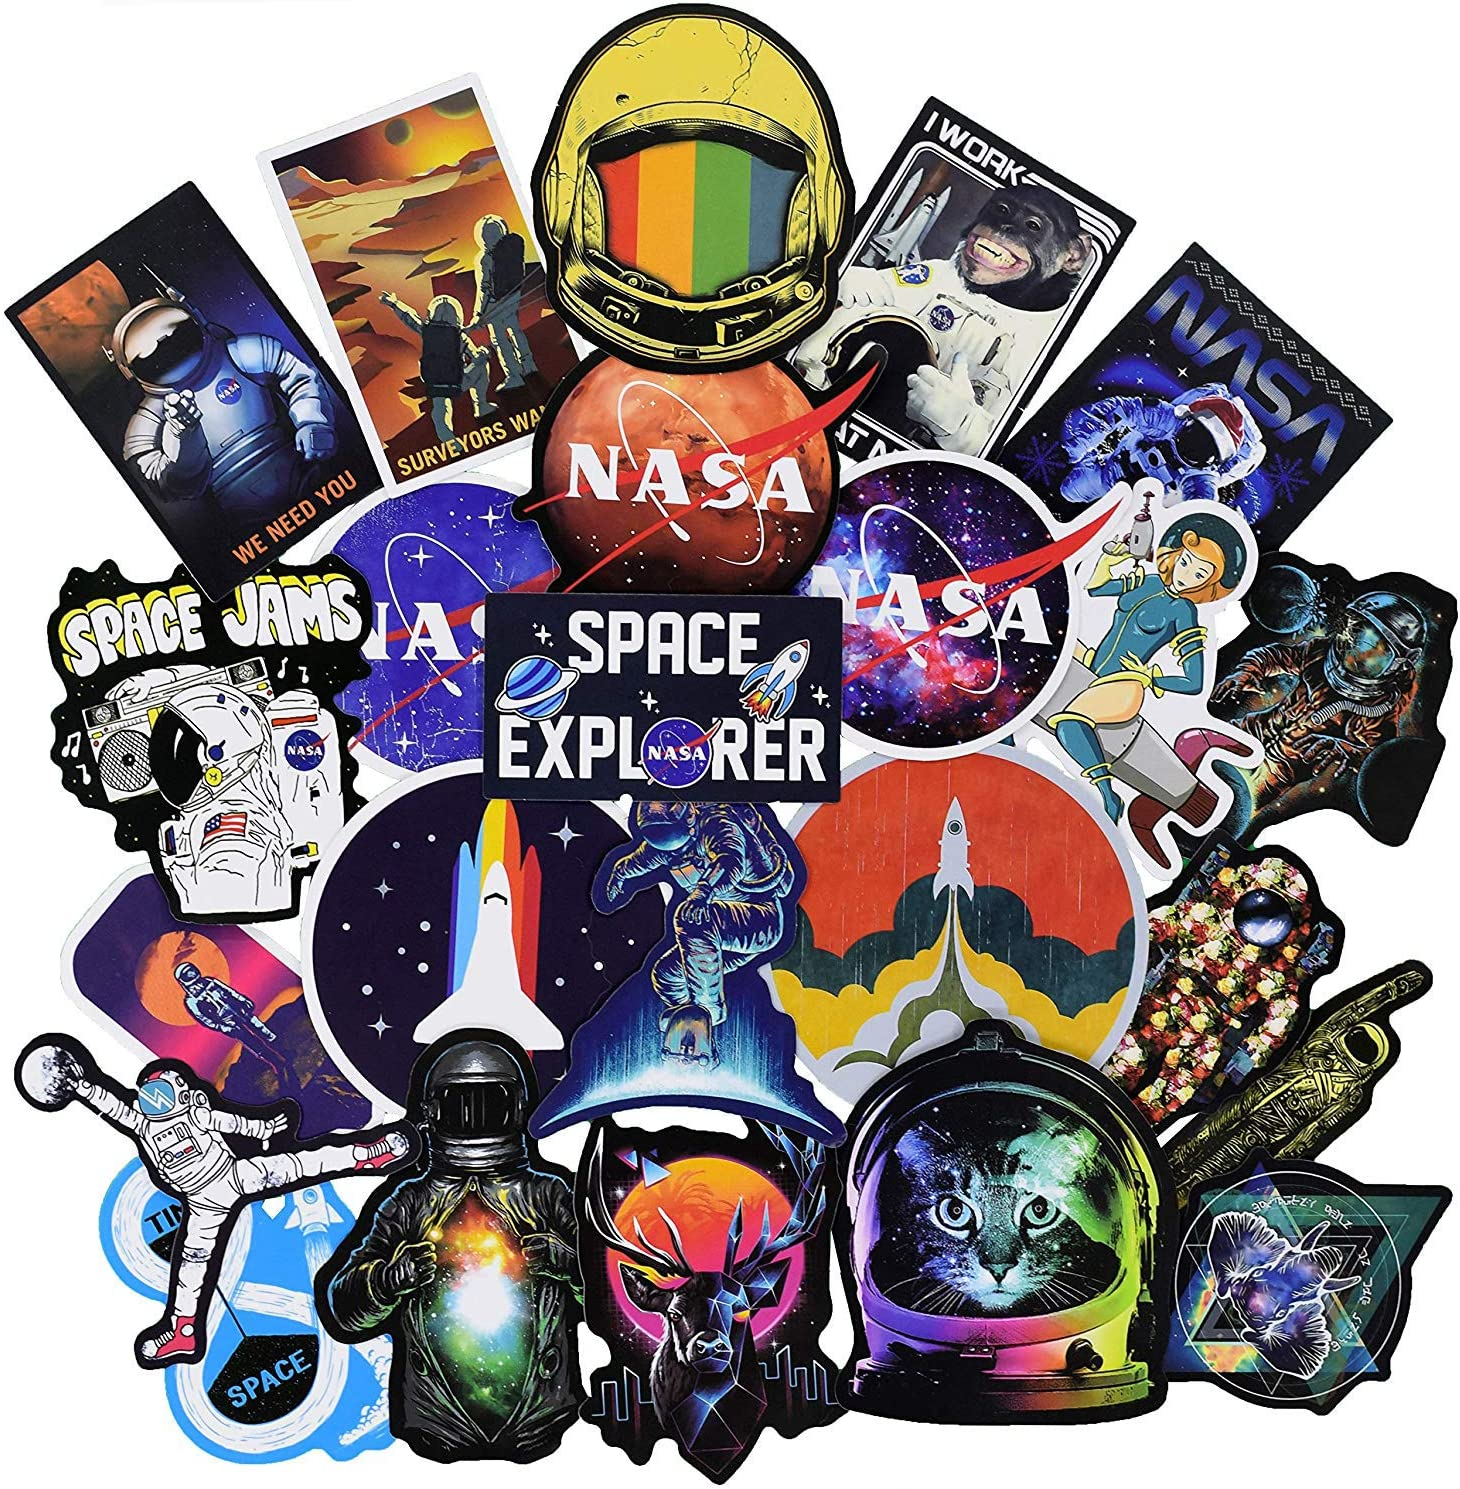 100Pcs NASA Space Explorer Galaxy Theme Stickers Variety Vinyl Car Sticker Motorcycle Bicycle Luggage Decal Graffiti Patches Skateboard Stickers for Laptop Stickers for Kid and Adult